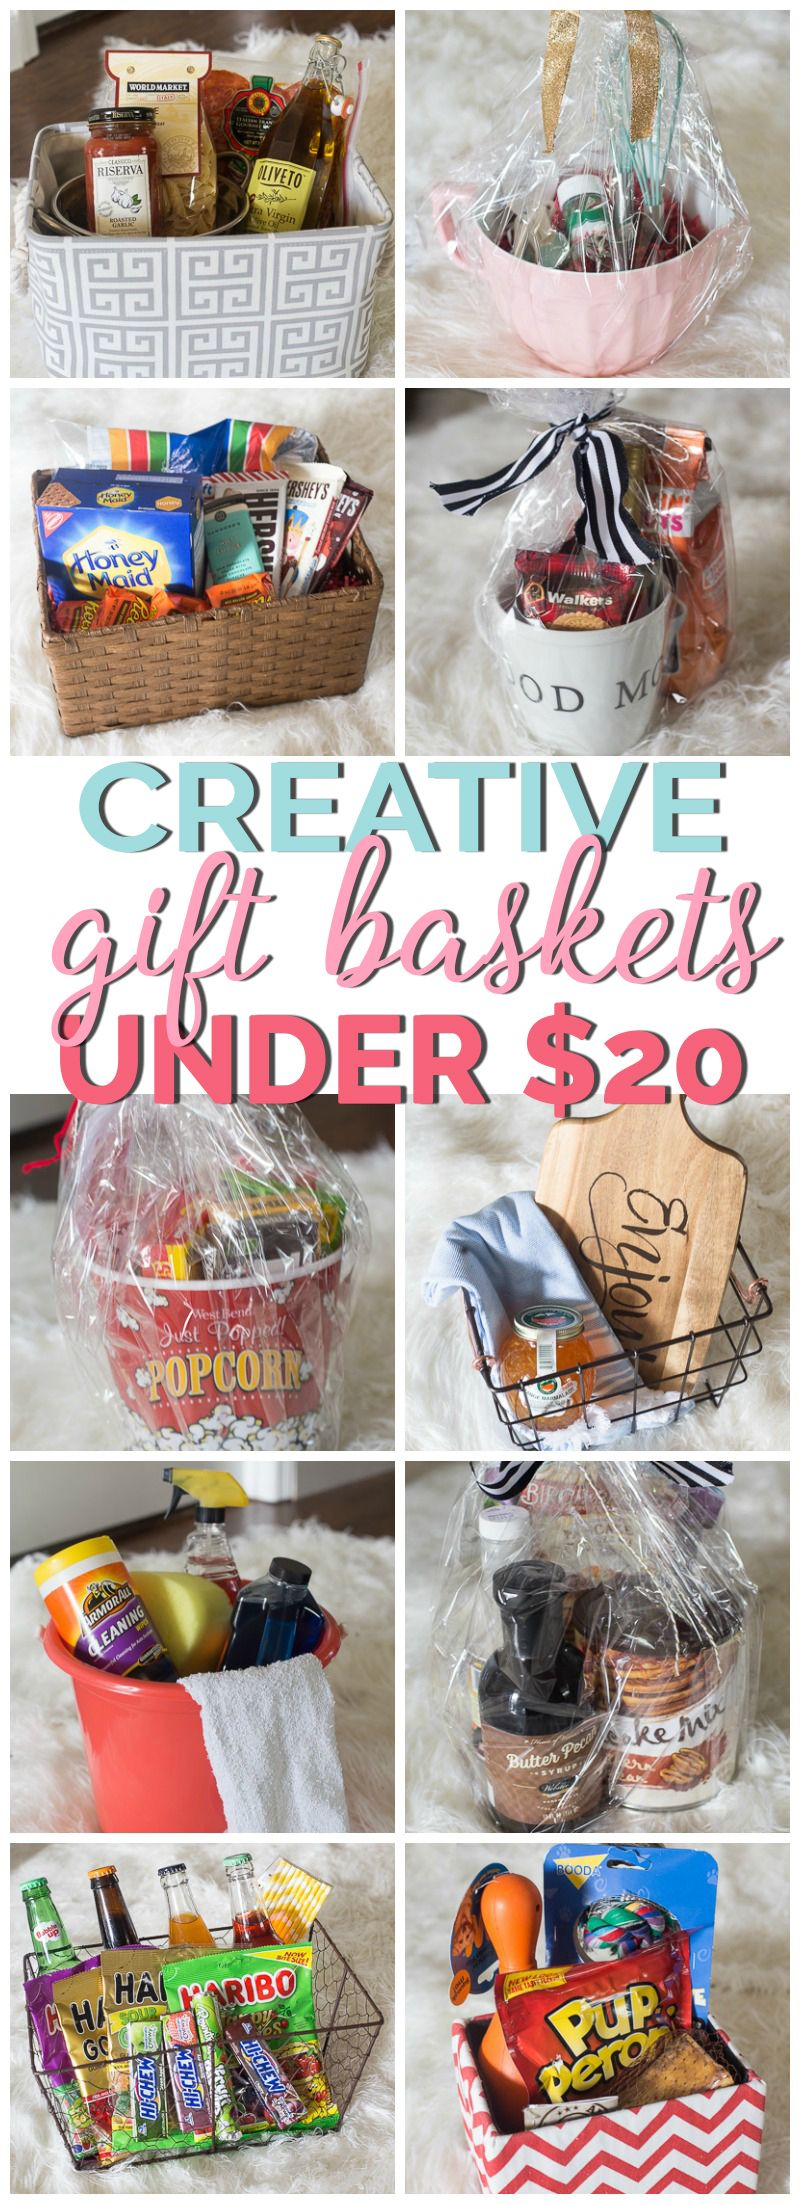 Creative gift basket ideas under 20 basket ideas Christmas gift ideas for cooking lovers